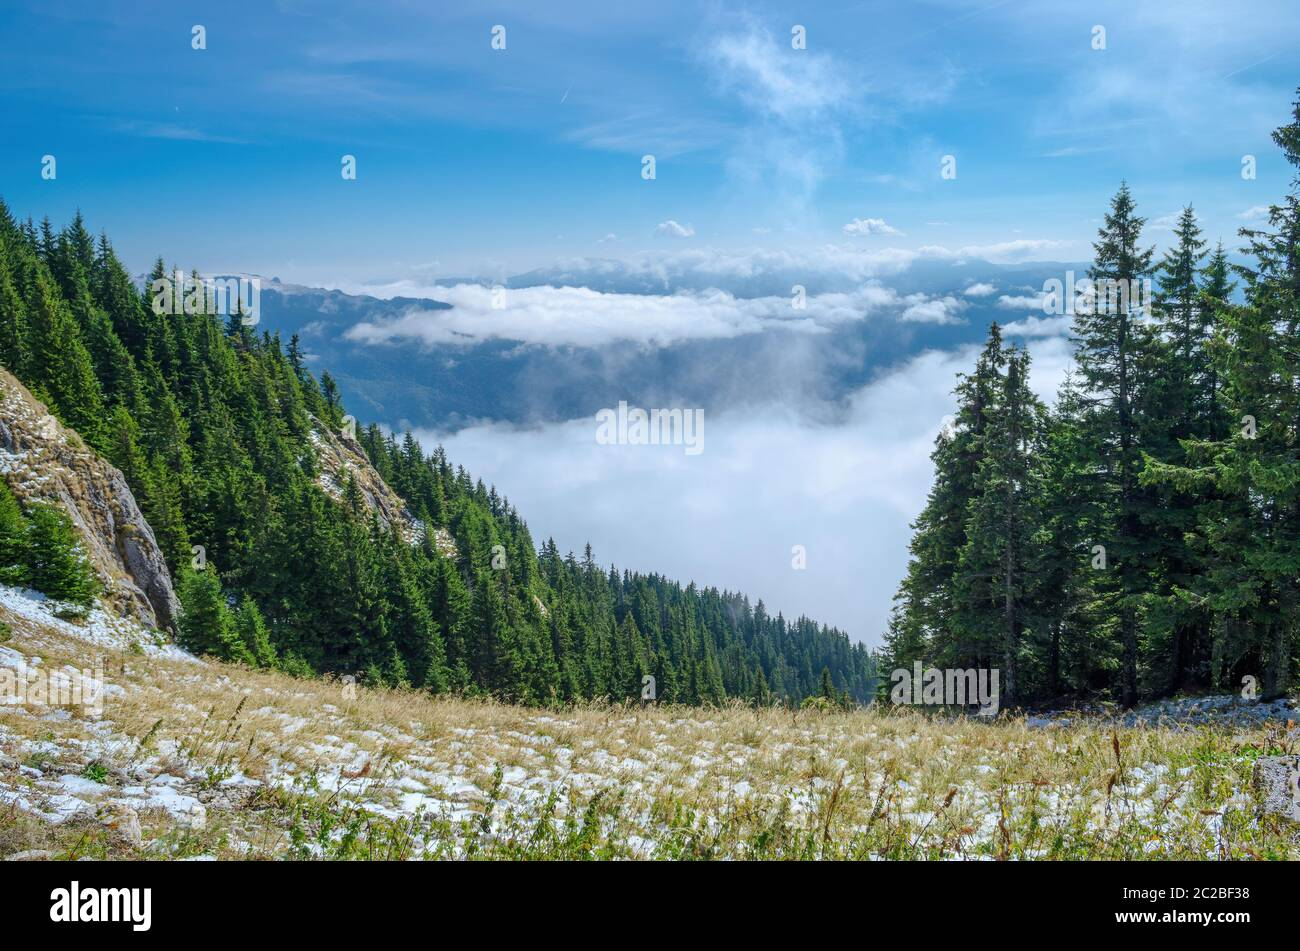 Green trees growing in grassy valley against cloudy sky on sunny day in Carpathian mountains in Romania Stock Photo